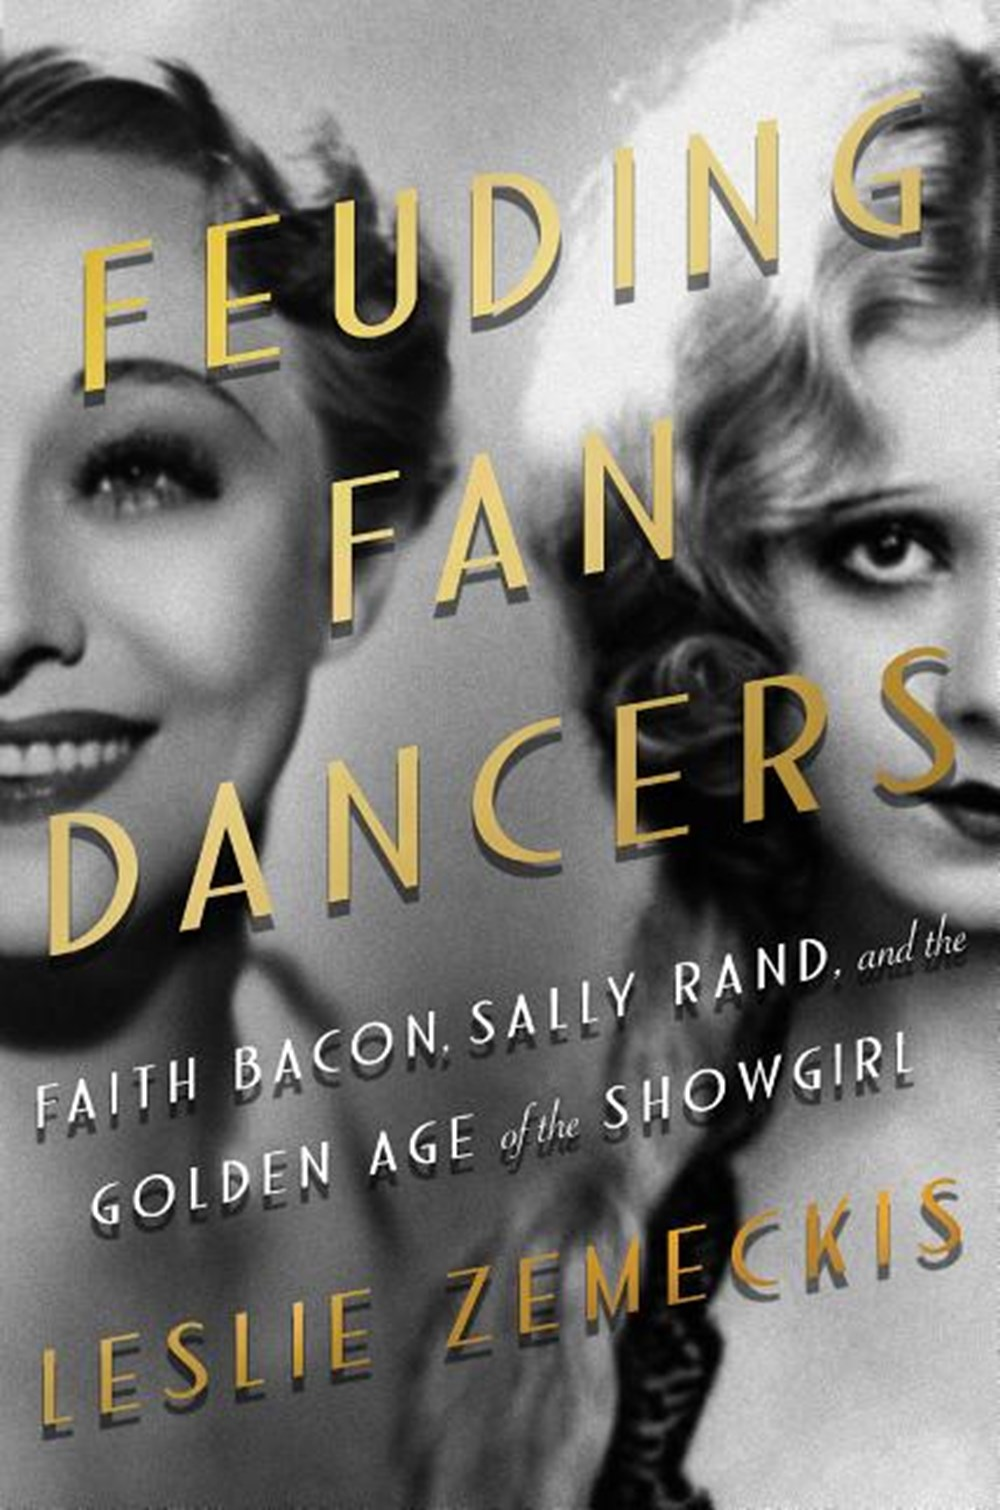 Feuding Fan Dancers Faith Bacon, Sally Rand, and the Golden Age of the Showgirl